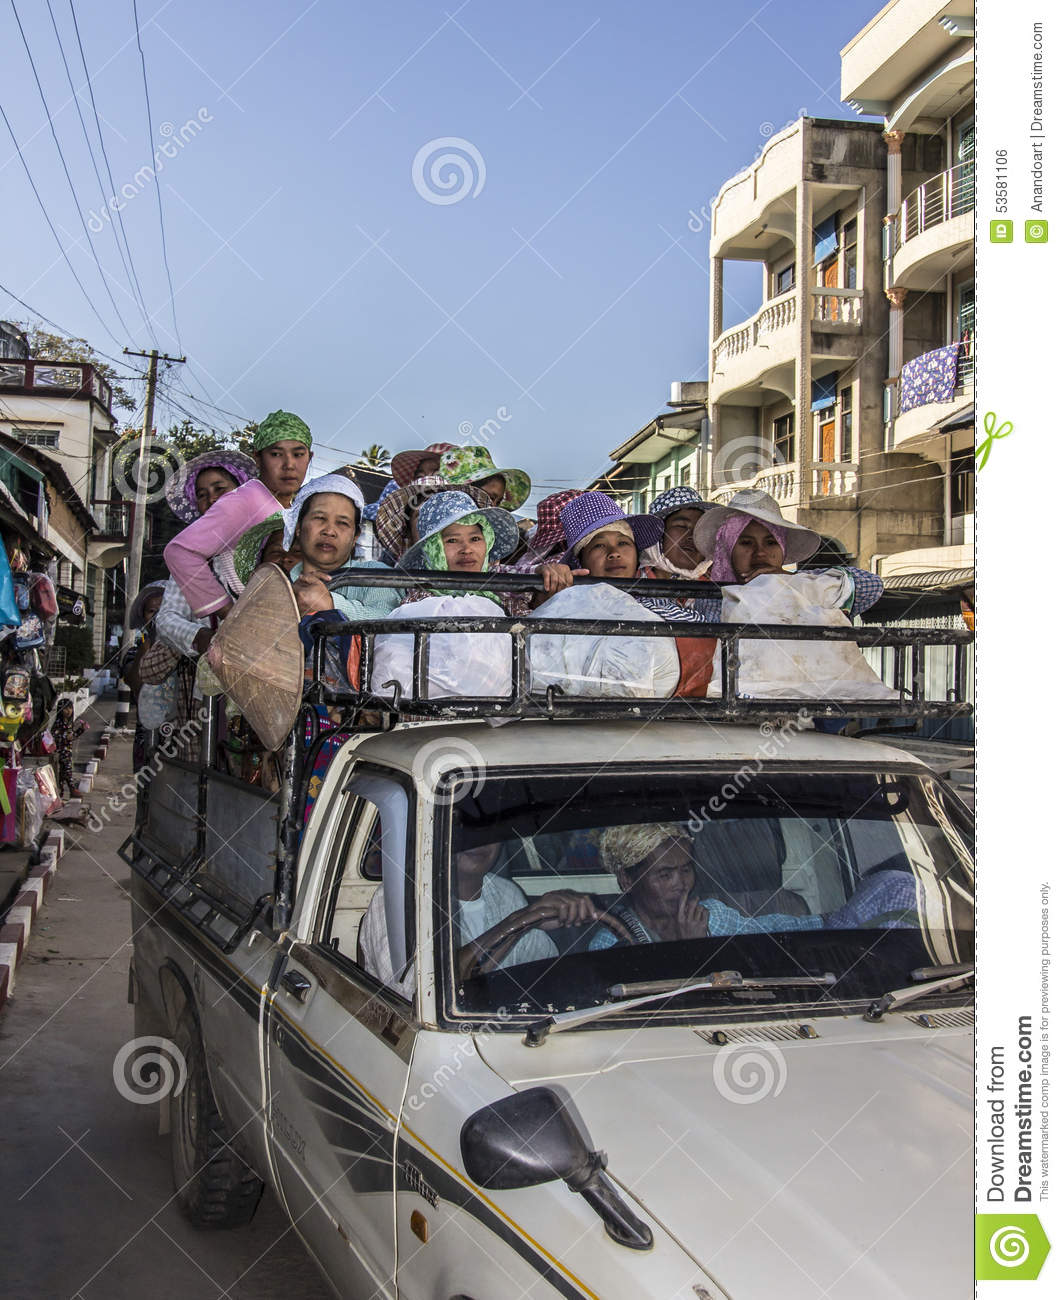 Keng Tung Myanmar  city pictures gallery : ... of workers on the load area of a pick up in Keng Tung, Myanmar